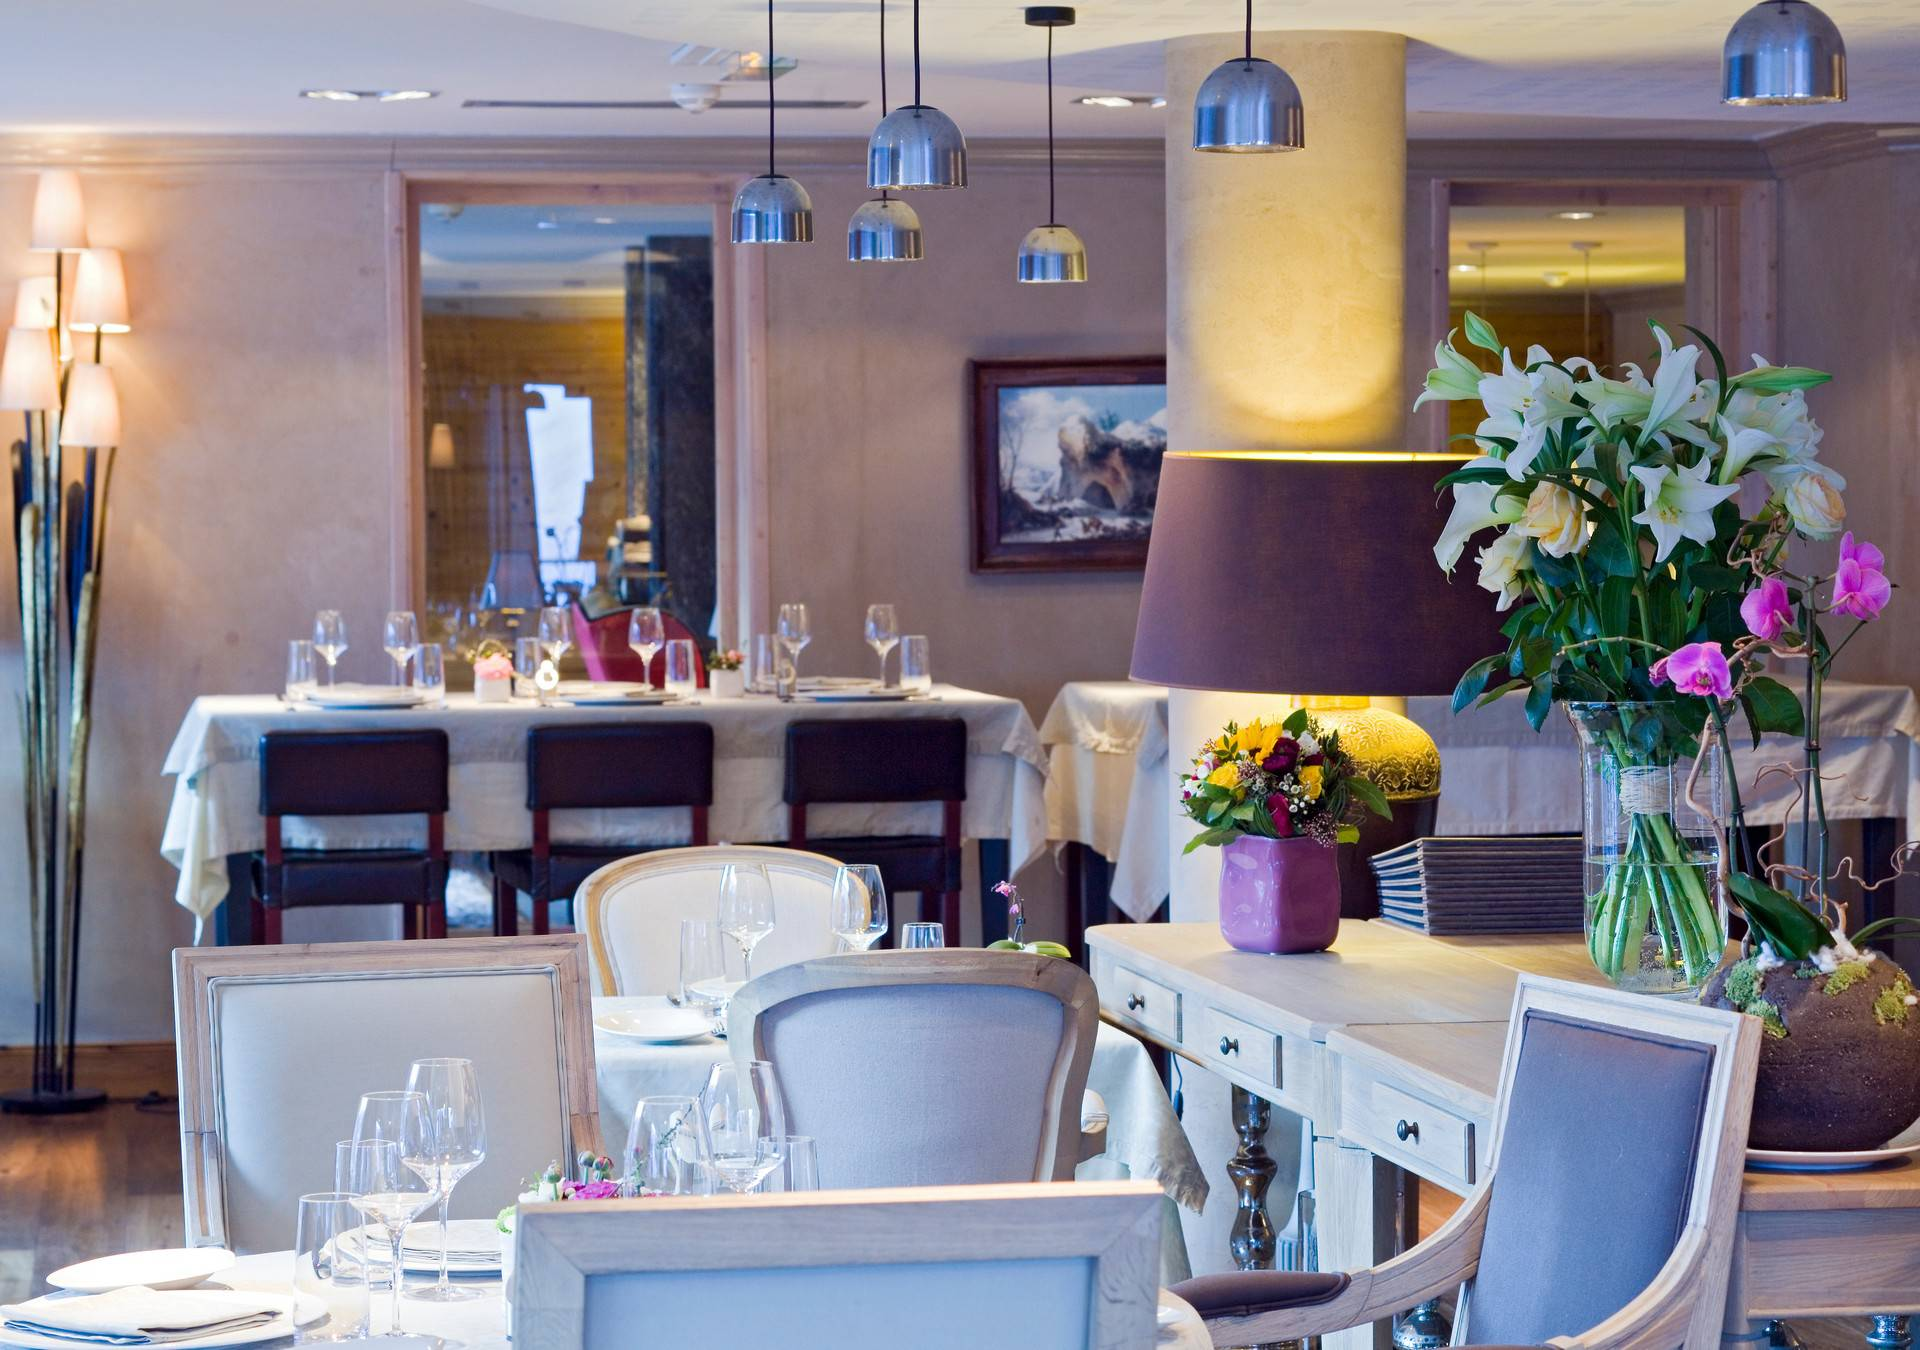 Dine in sumptuous surroundings